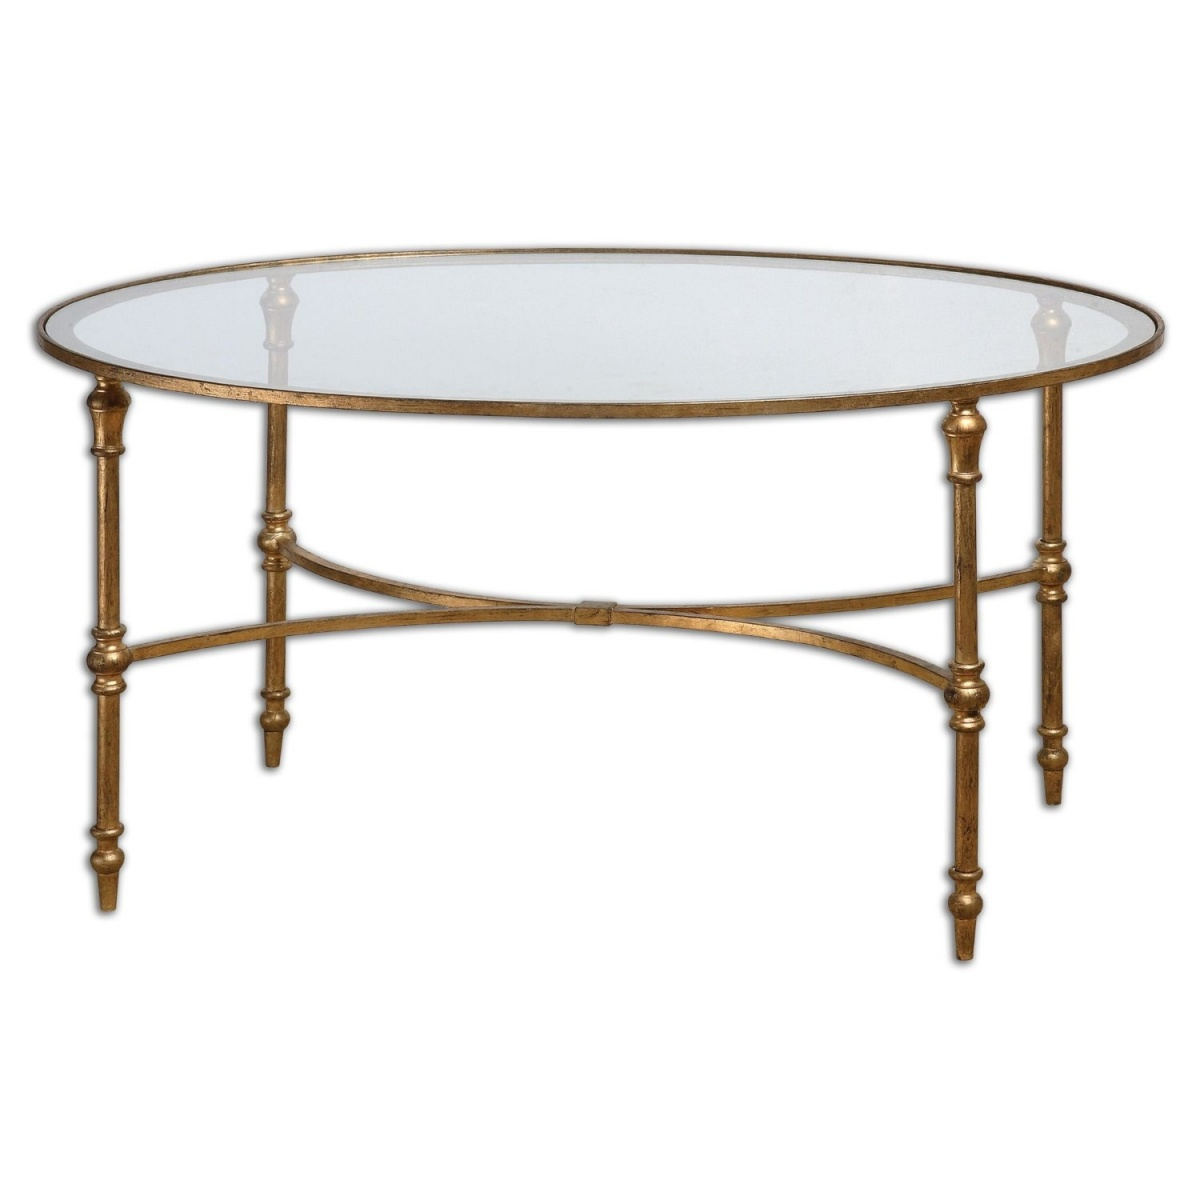 round-metal-small-coffee-tables-simple-and-glass-round-small-glass-coffee-table-round-metal-and-glass-coffee-table (Image 7 of 10)